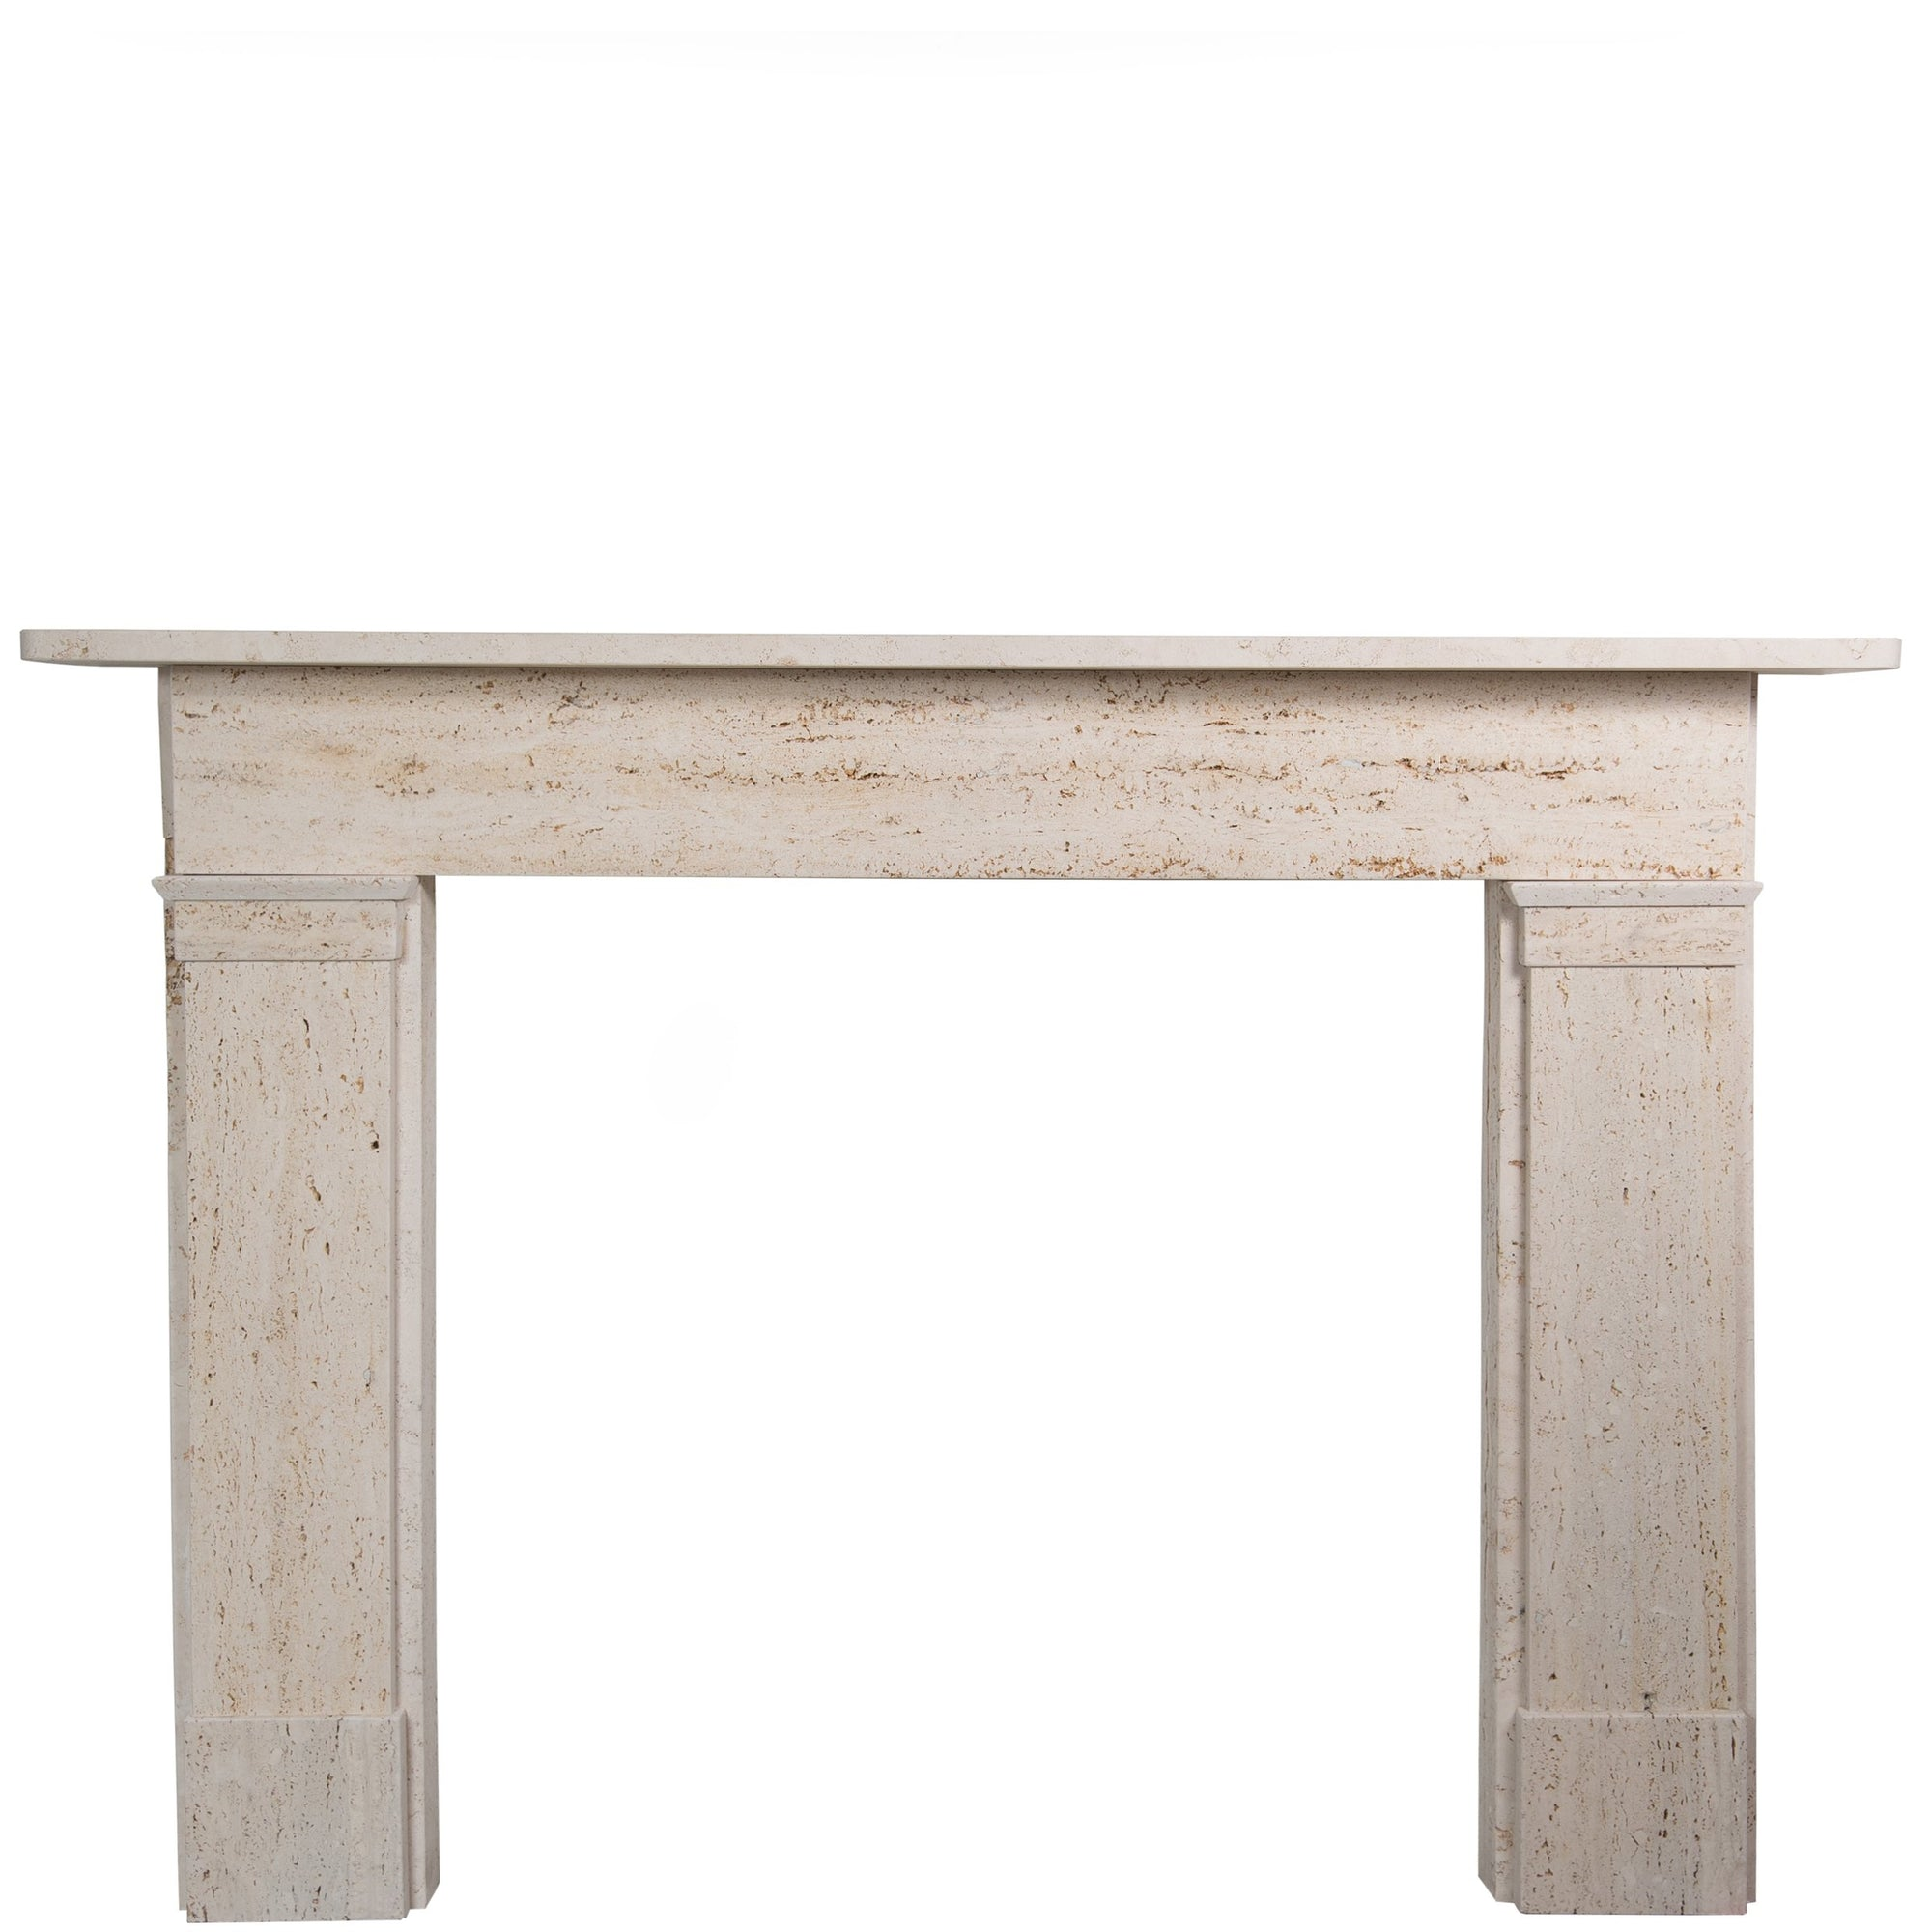 Georgian/Victorian Style Travertine Marble Fireplace Surround